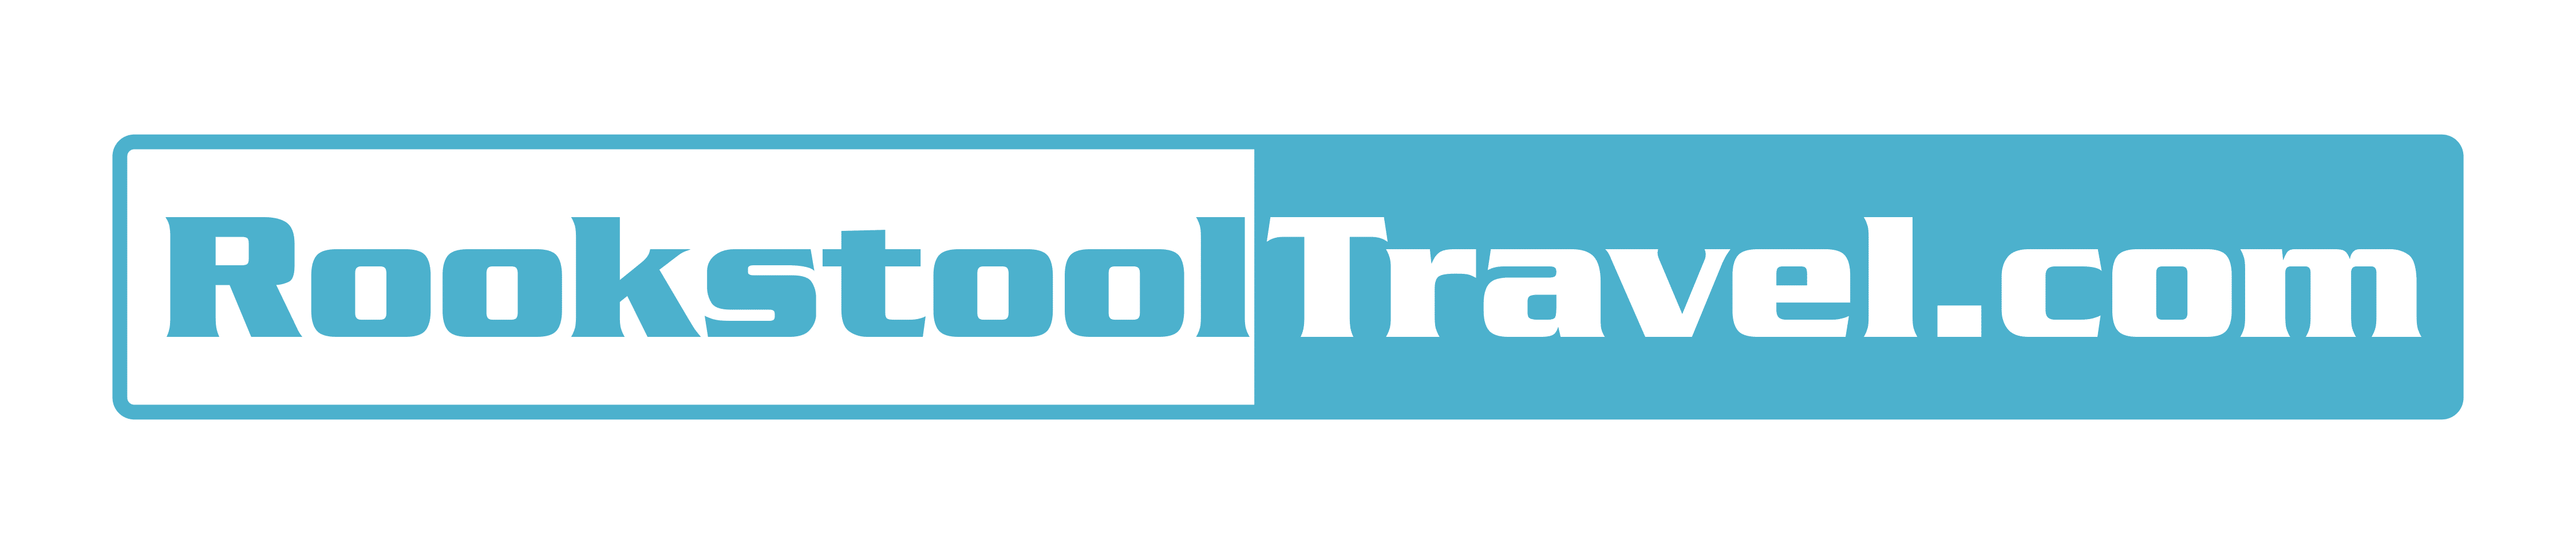 Rookstool Travel Interviews